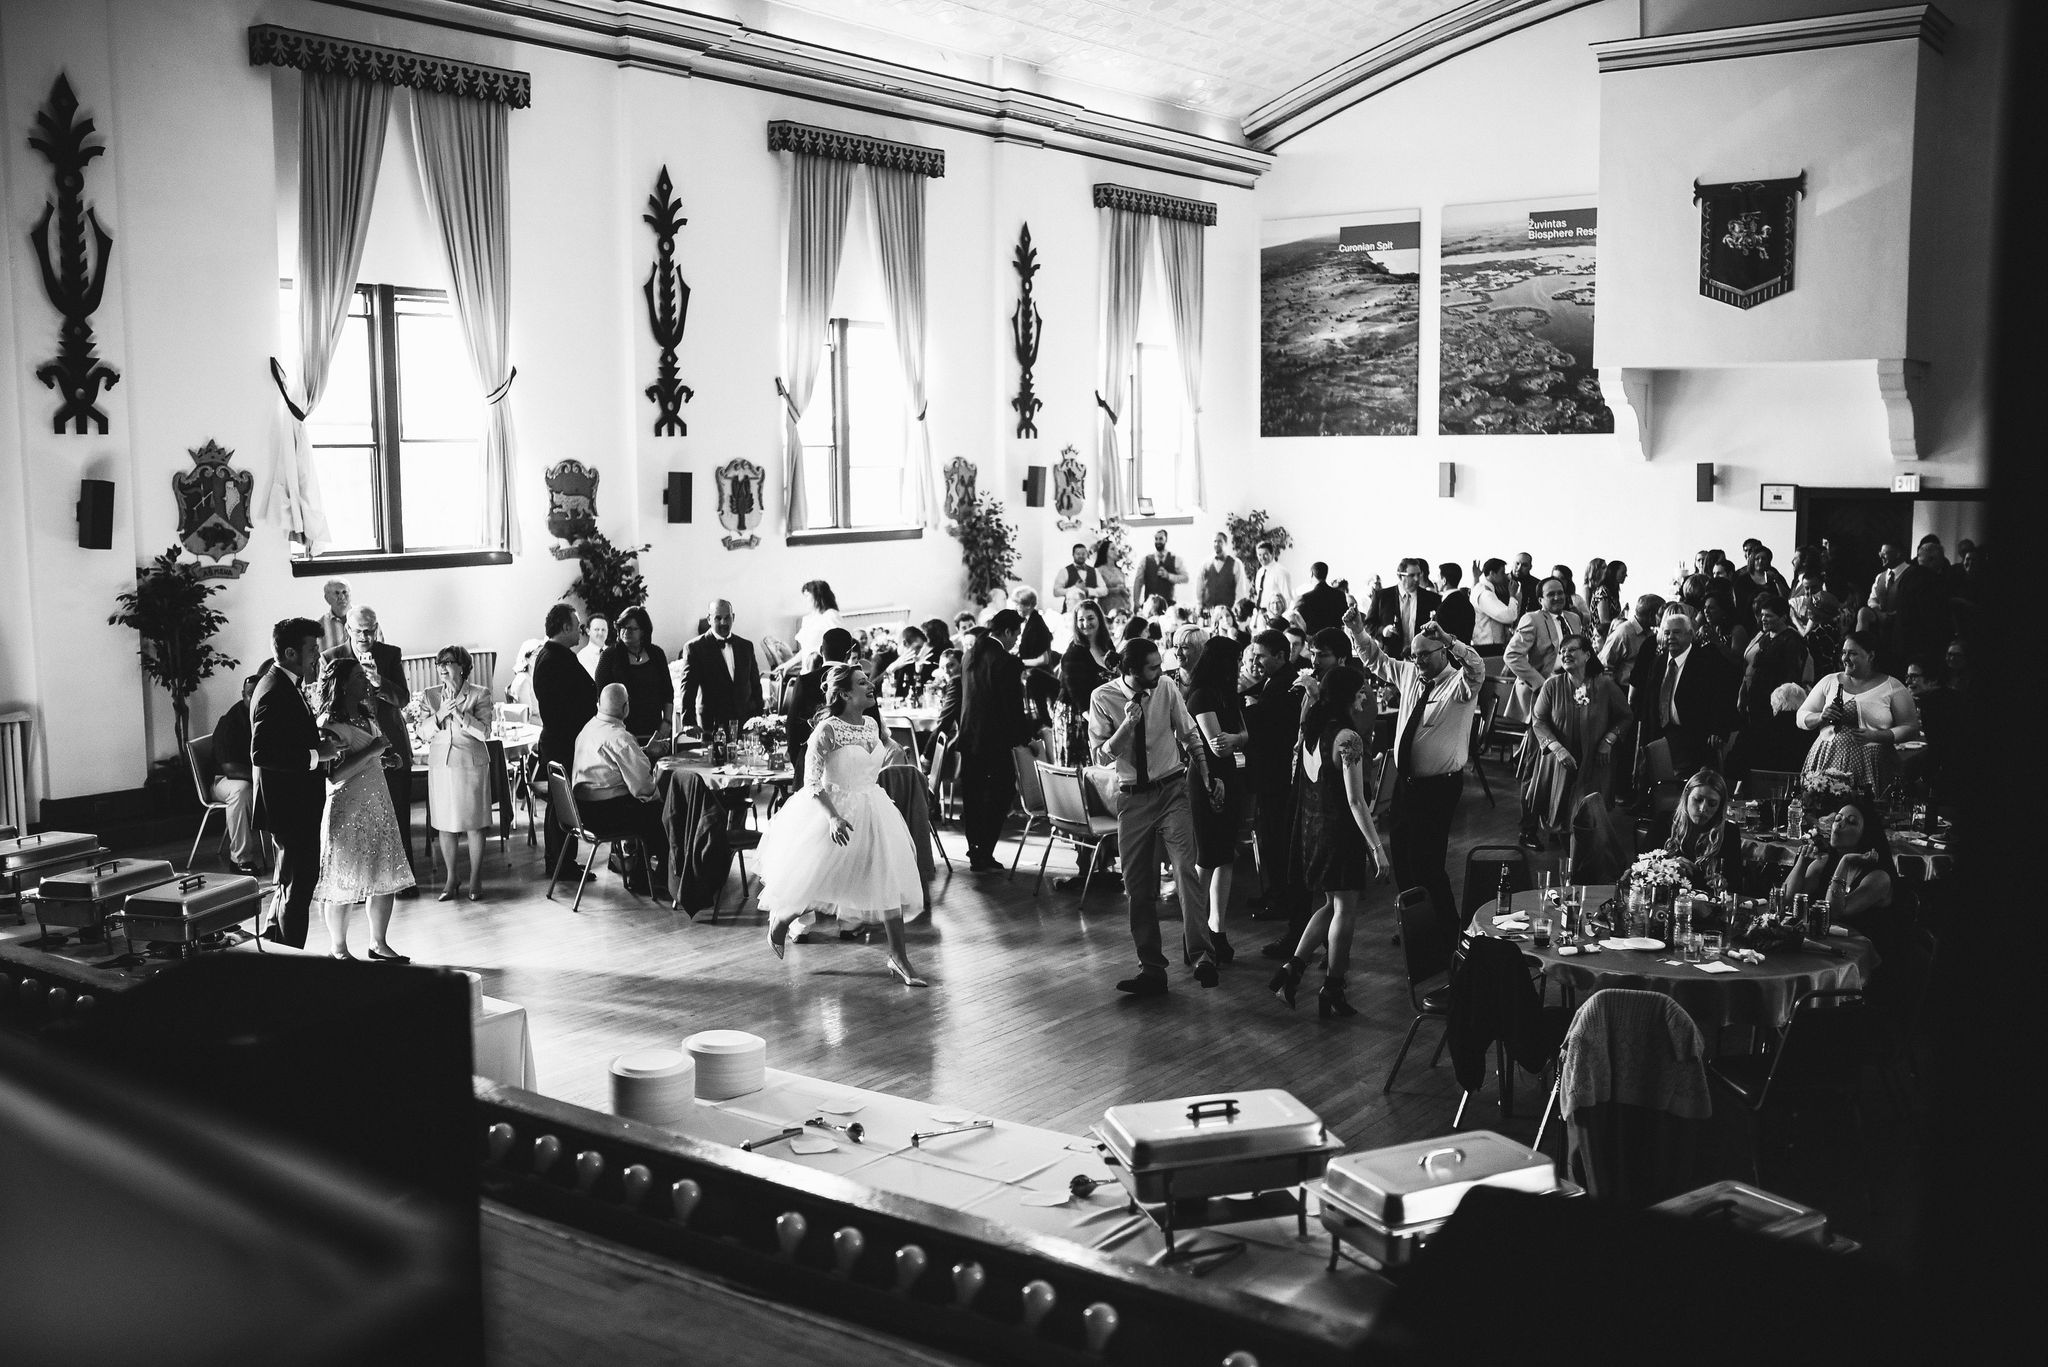 Baltimore, Lithuanian Dance Hall, Maryland Wedding Photographer, Vintage, Classic, 50s Style, Photo of Whole Reception, Black and White, Guests Having Fun at Reception